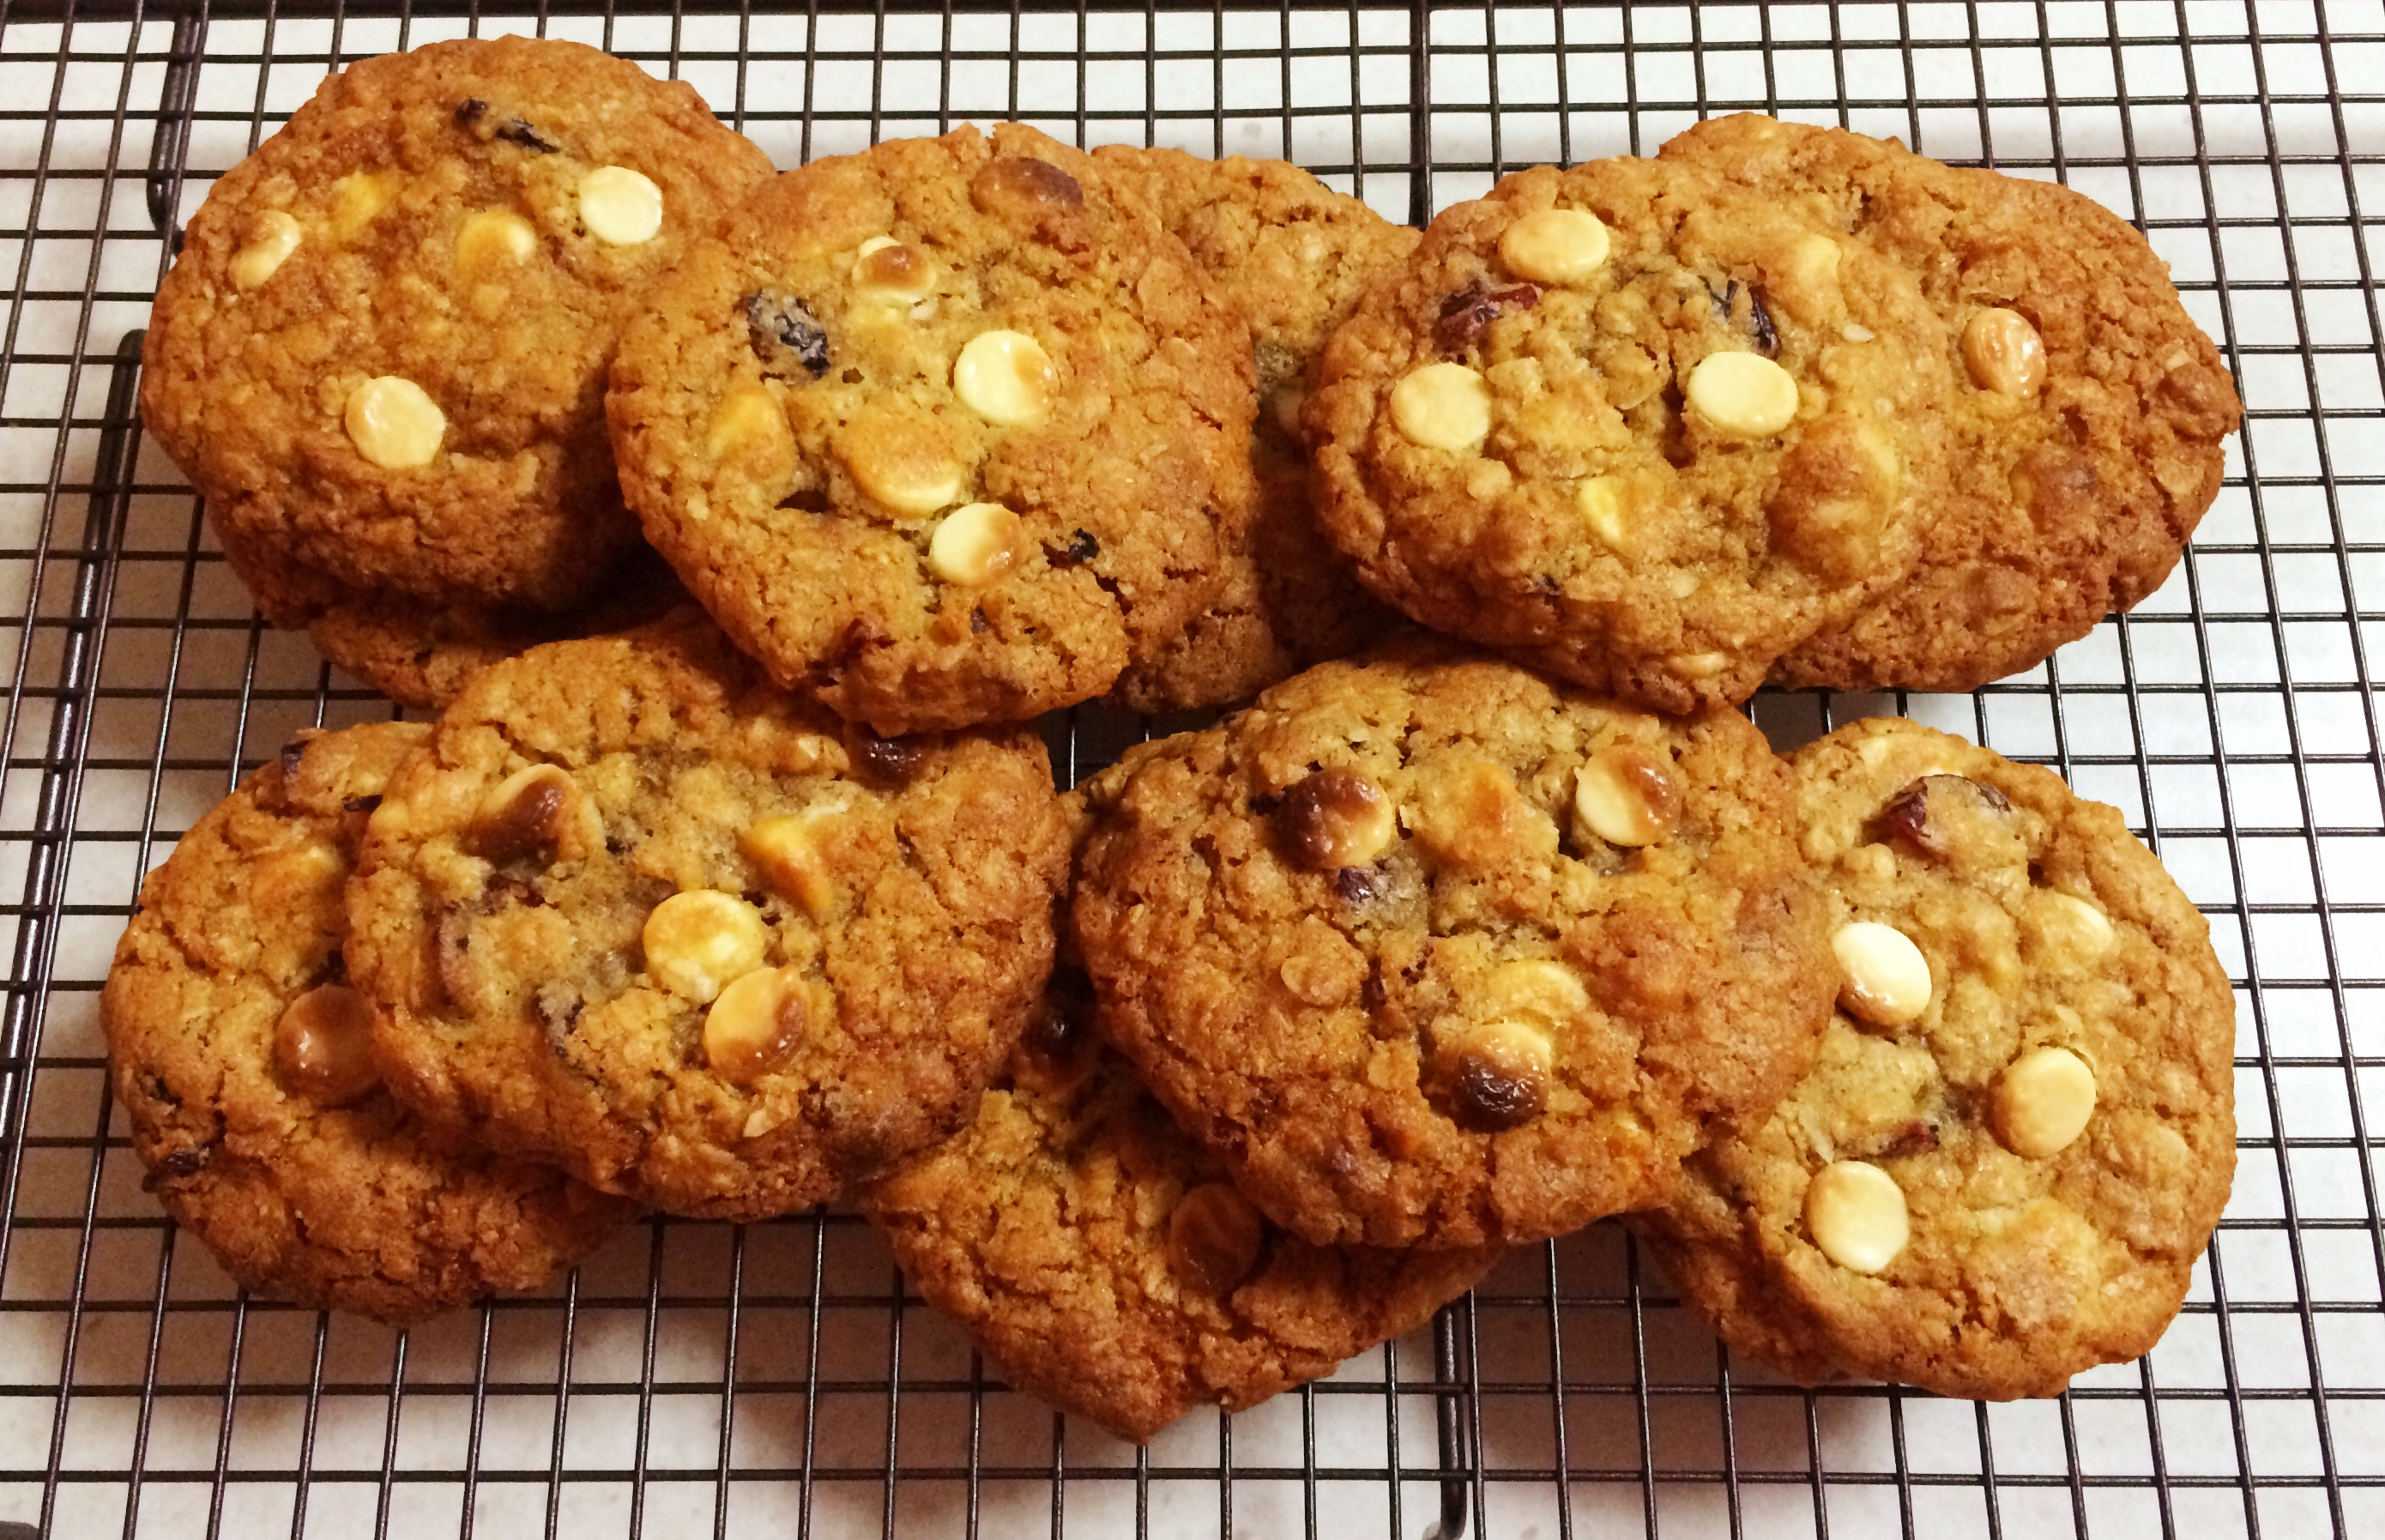 Macadamia, Cranberry & White Chocolate ANZAC Cookies - Bake Play Smile